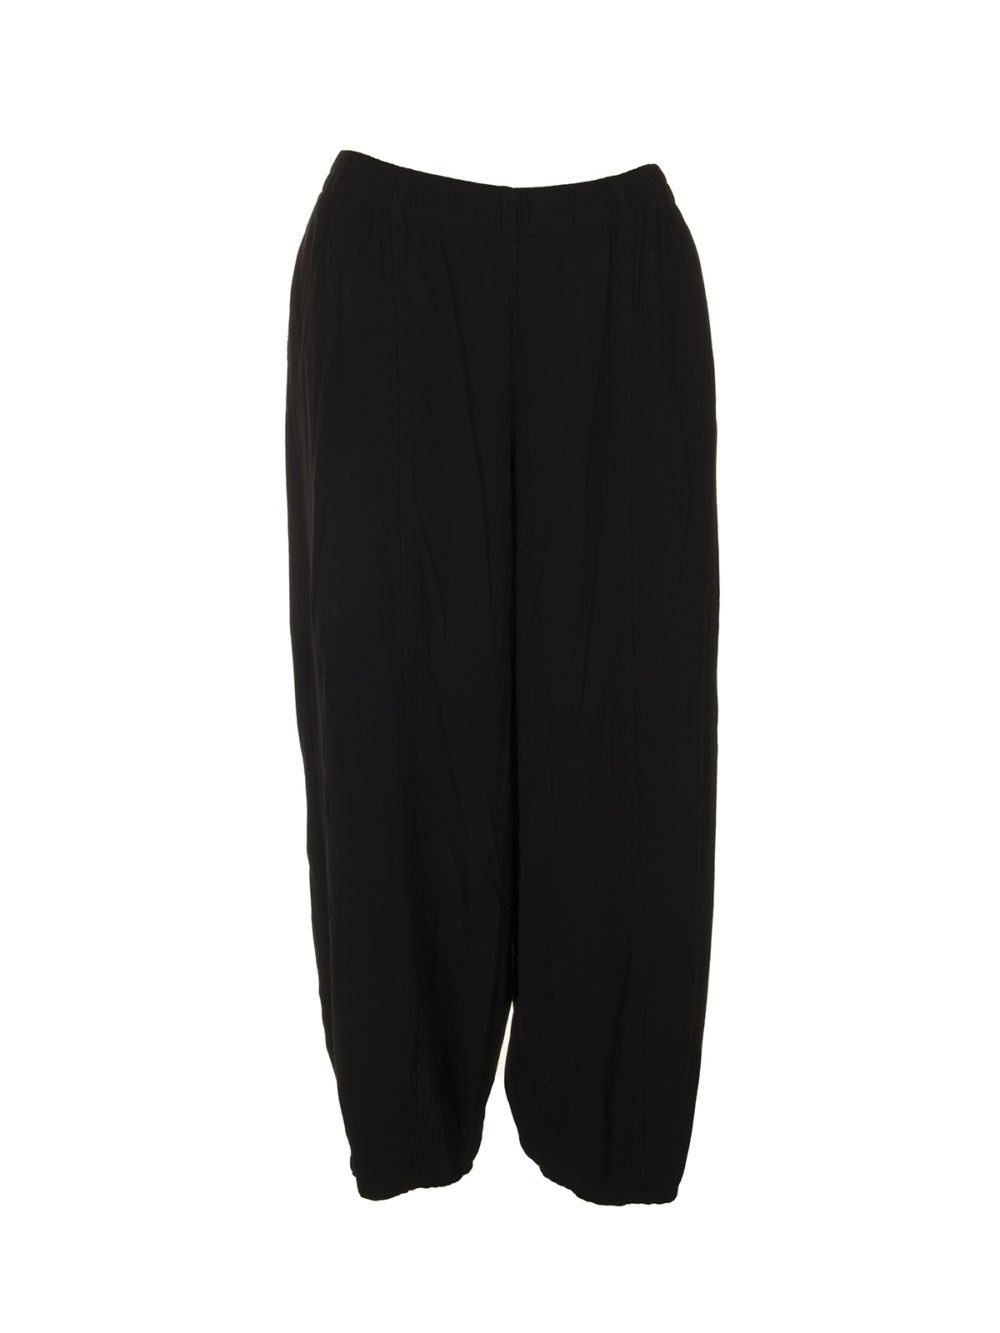 Trousers 2069-VS2 Grizas Katie Kerr Women's Clothing